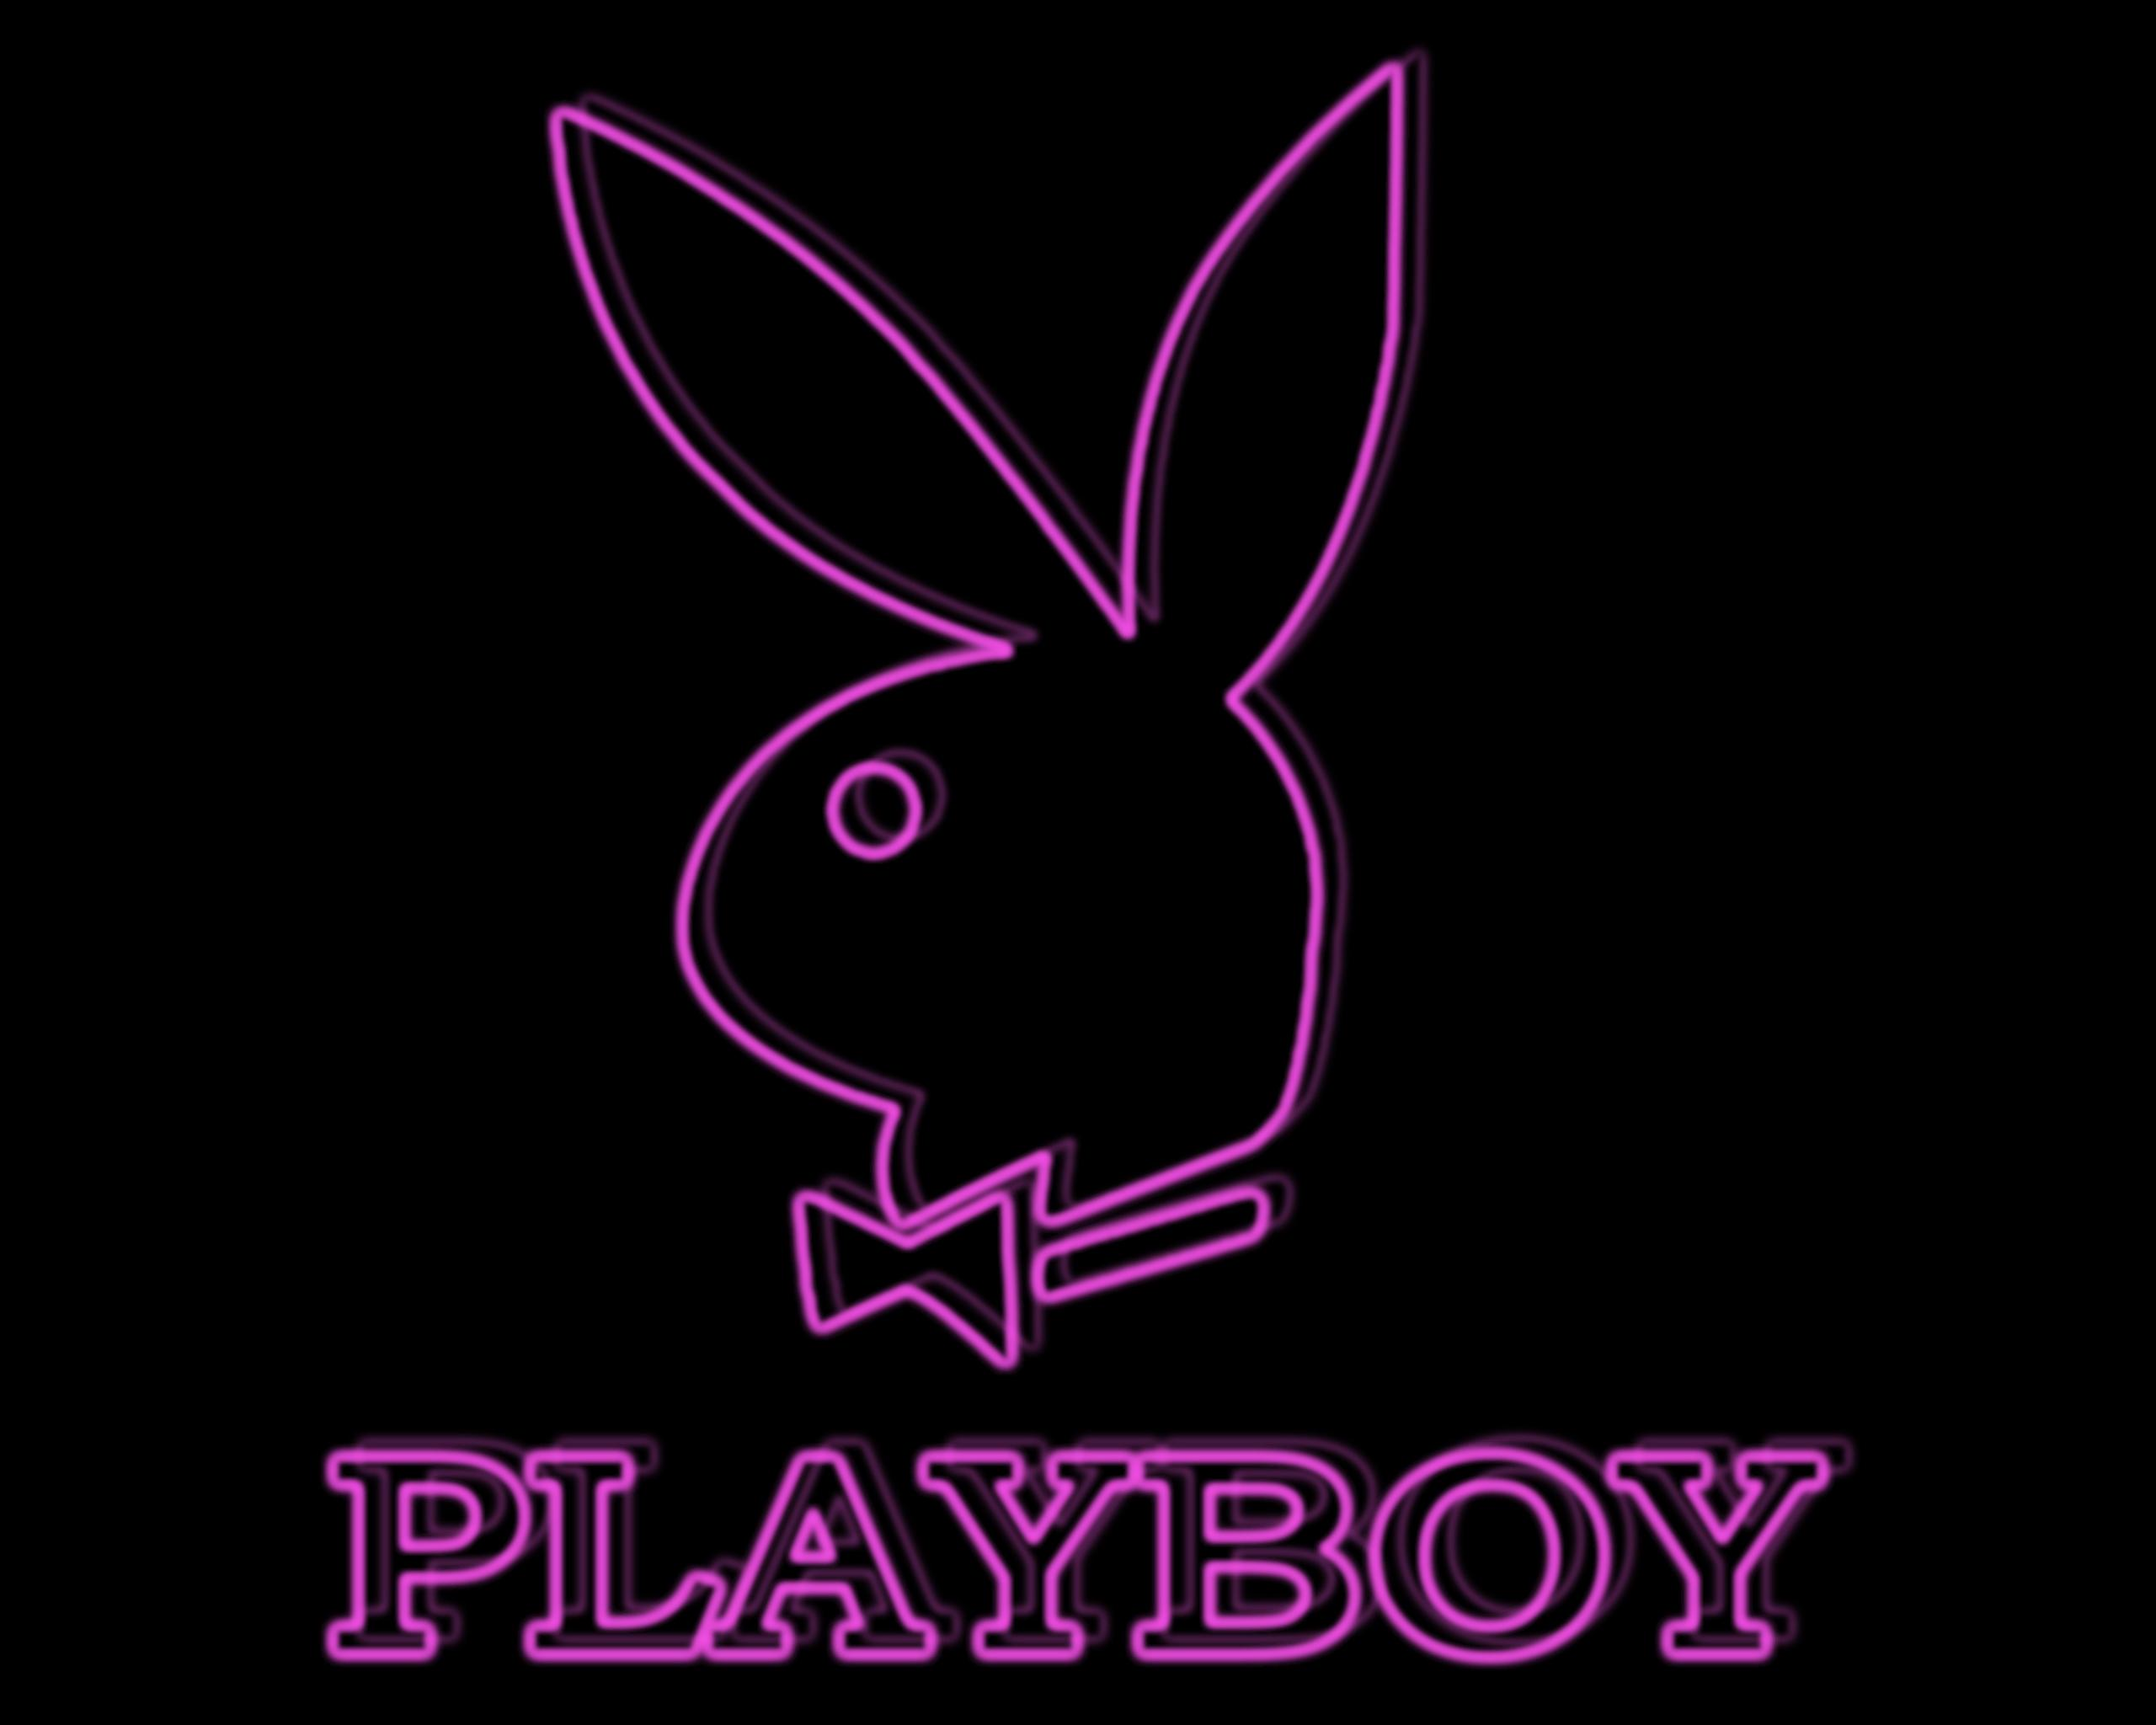 playboy wallpaper 43 Wallpapers – Live Wallpapers